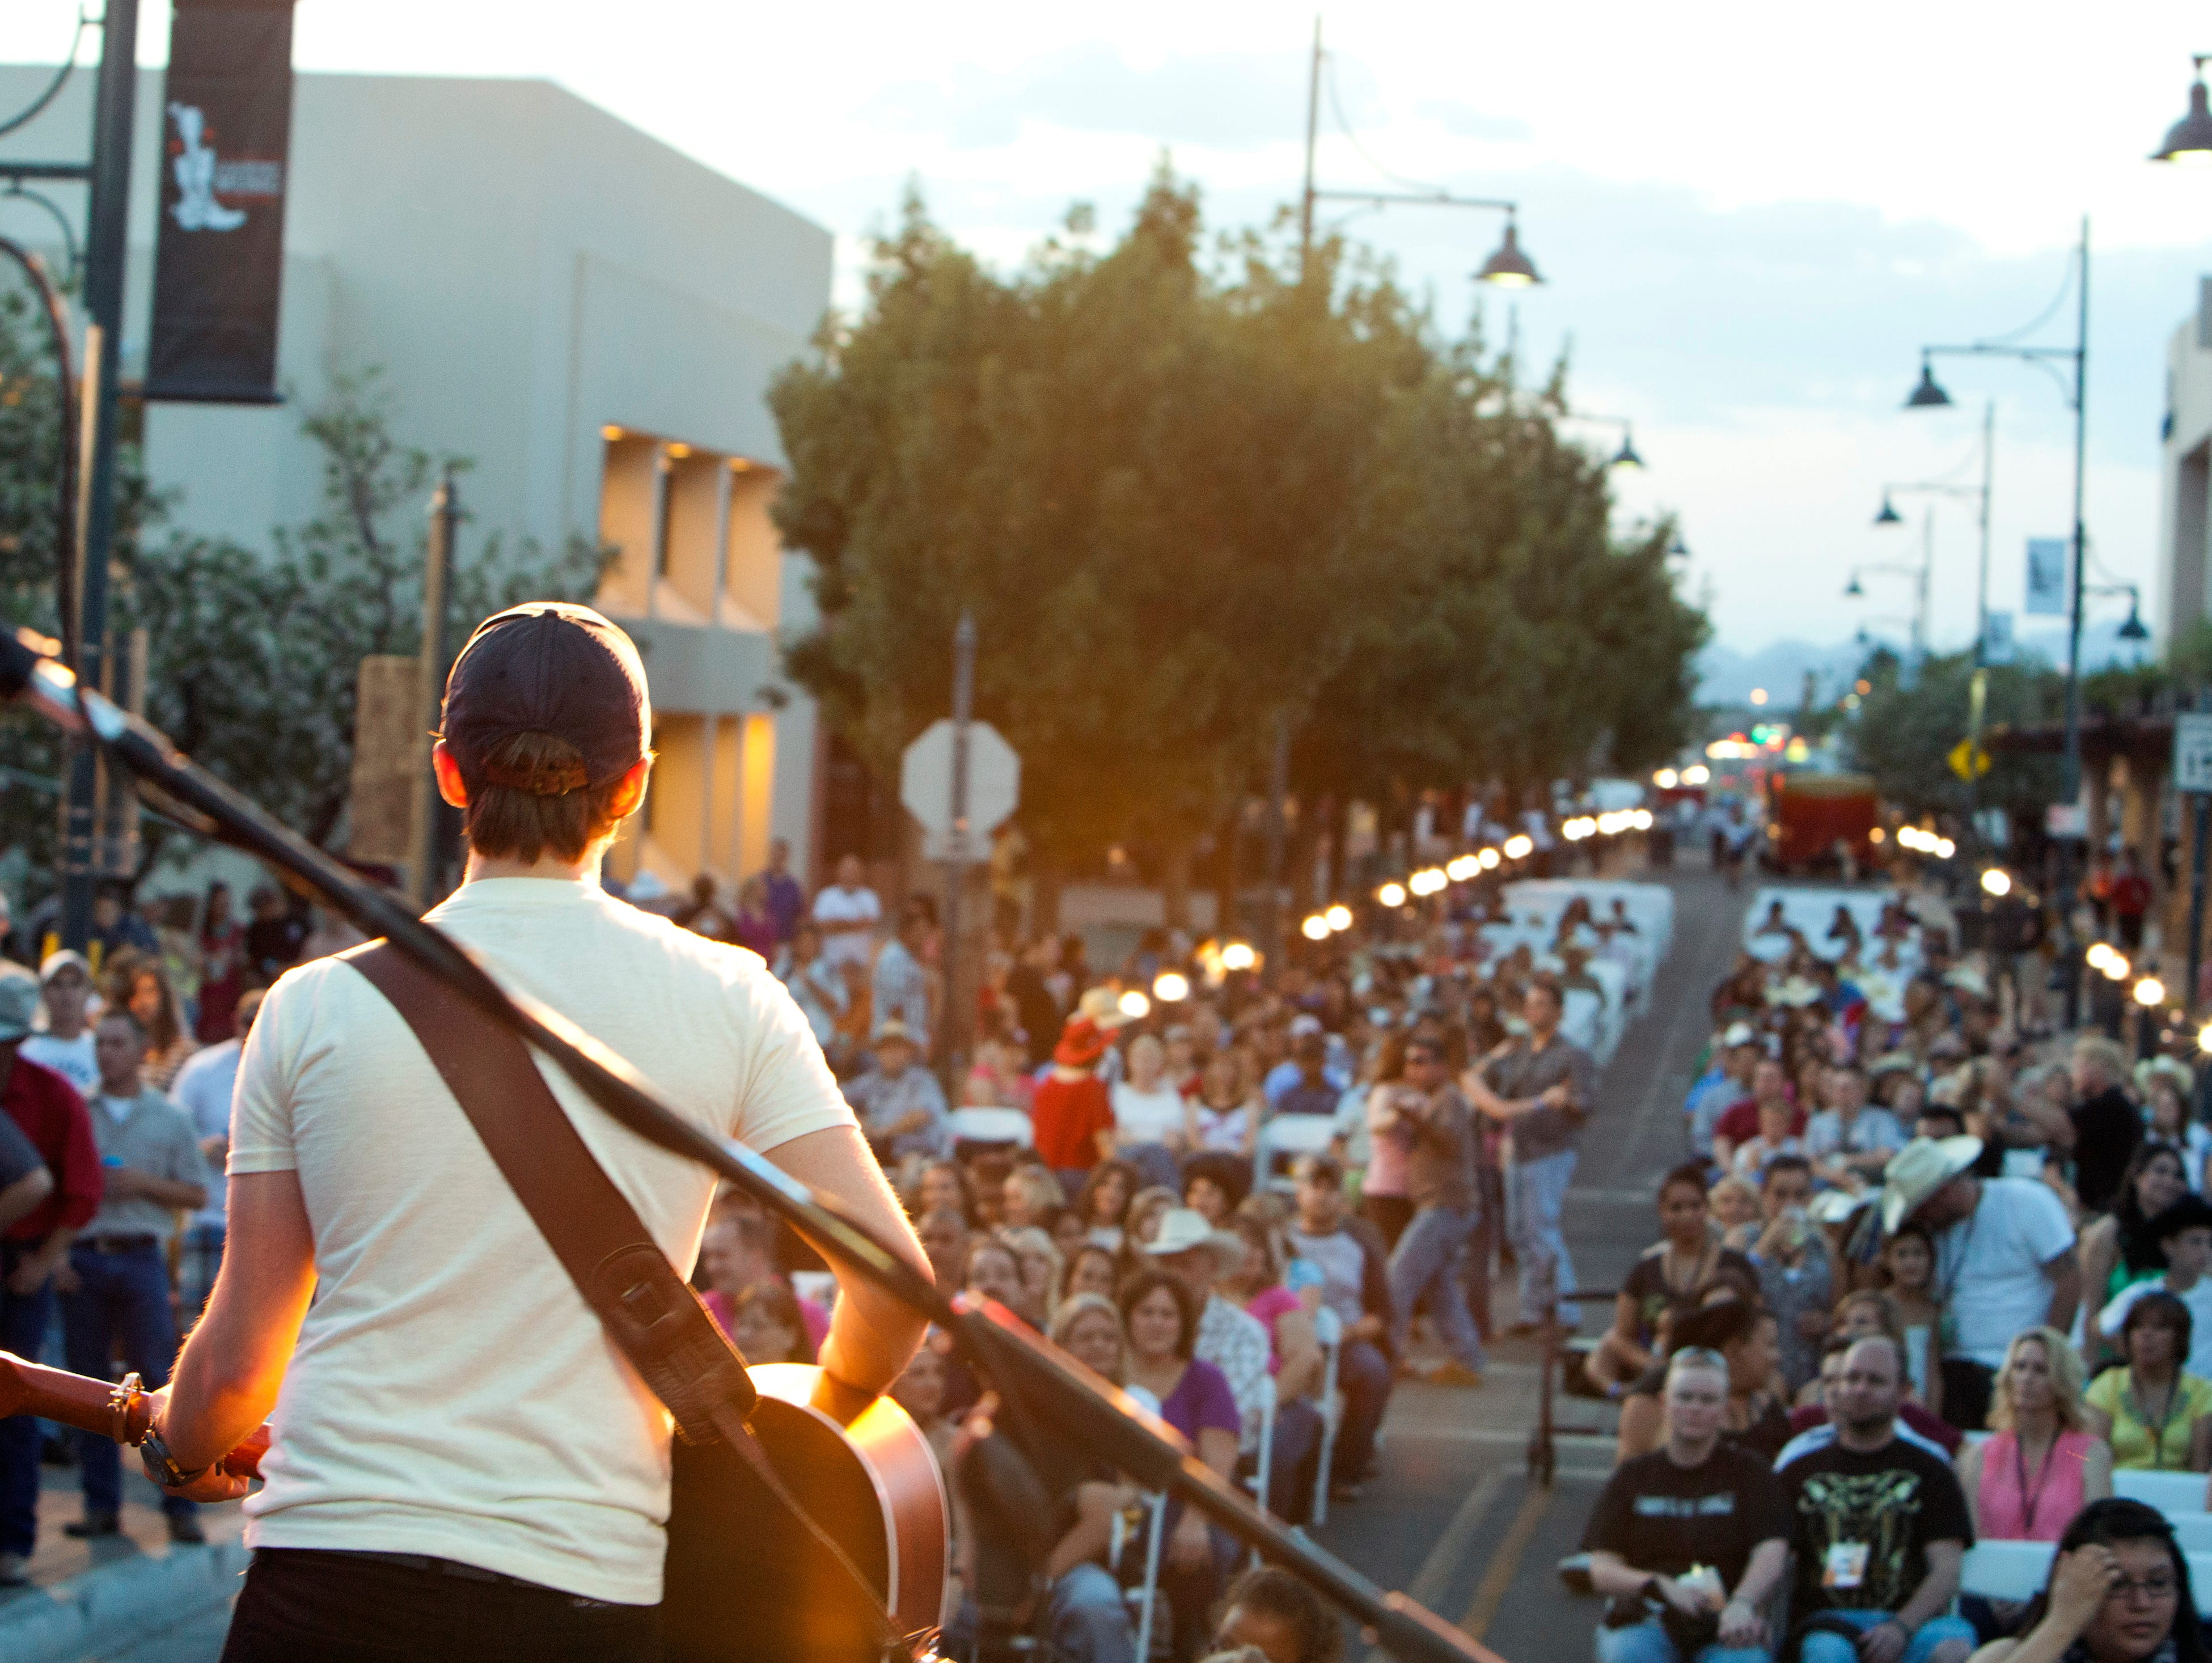 Enjoy a night of country music and local food at The 5th Annual Las Cruces Country Music Festival.